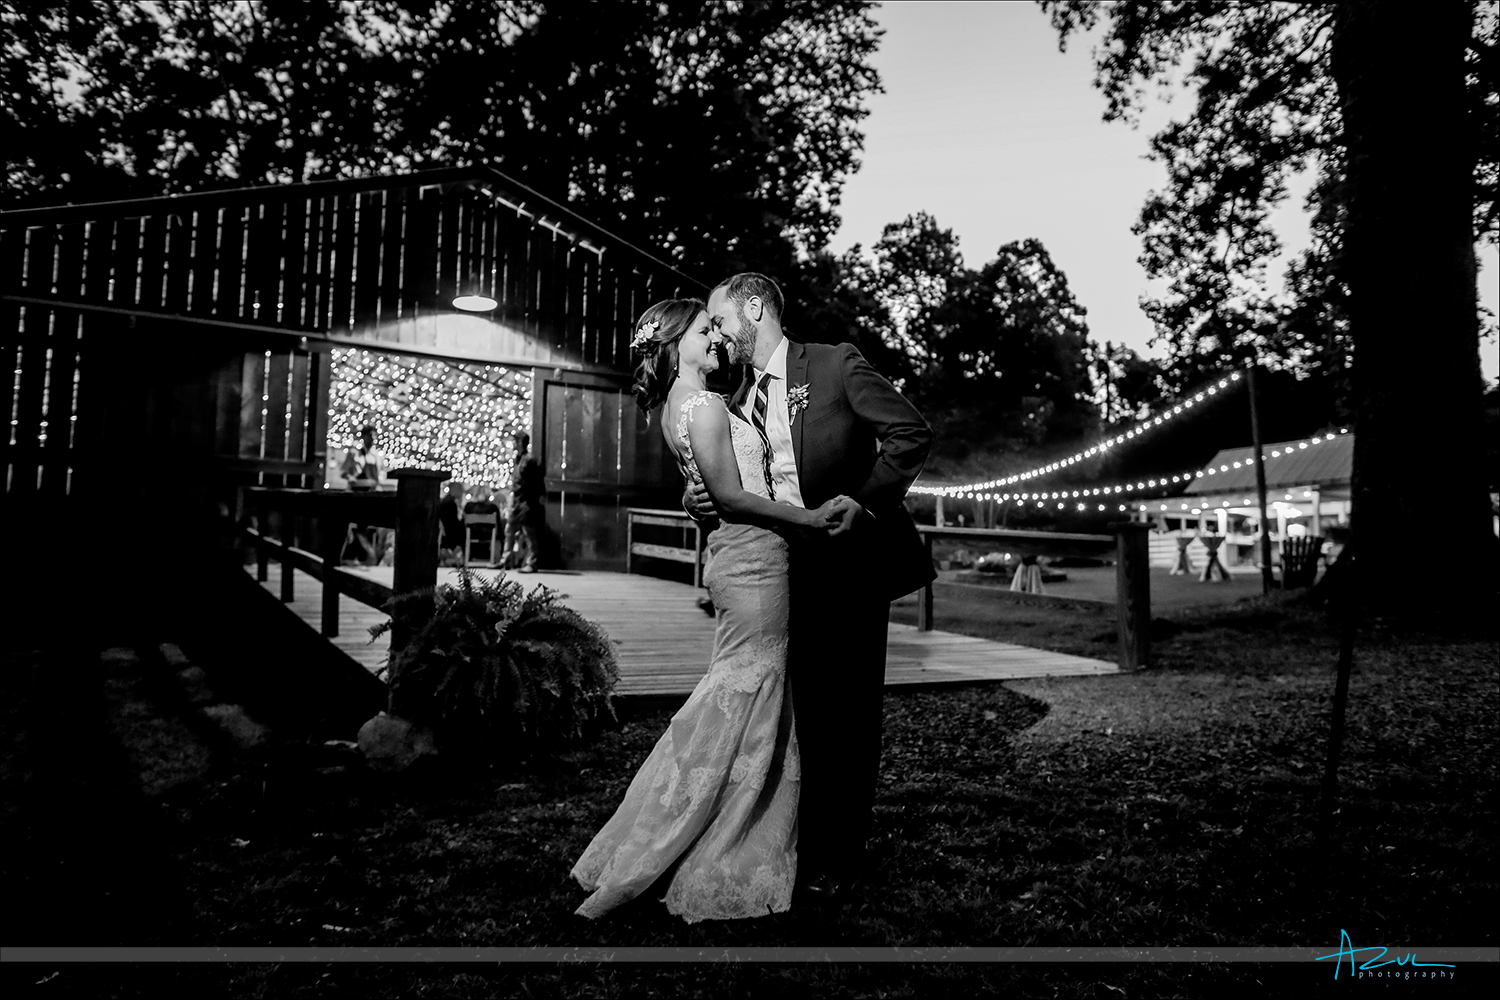 The happy bride and groom have a wedding day portrait created by the photographer just outside the barn during the reception in North Carolina.